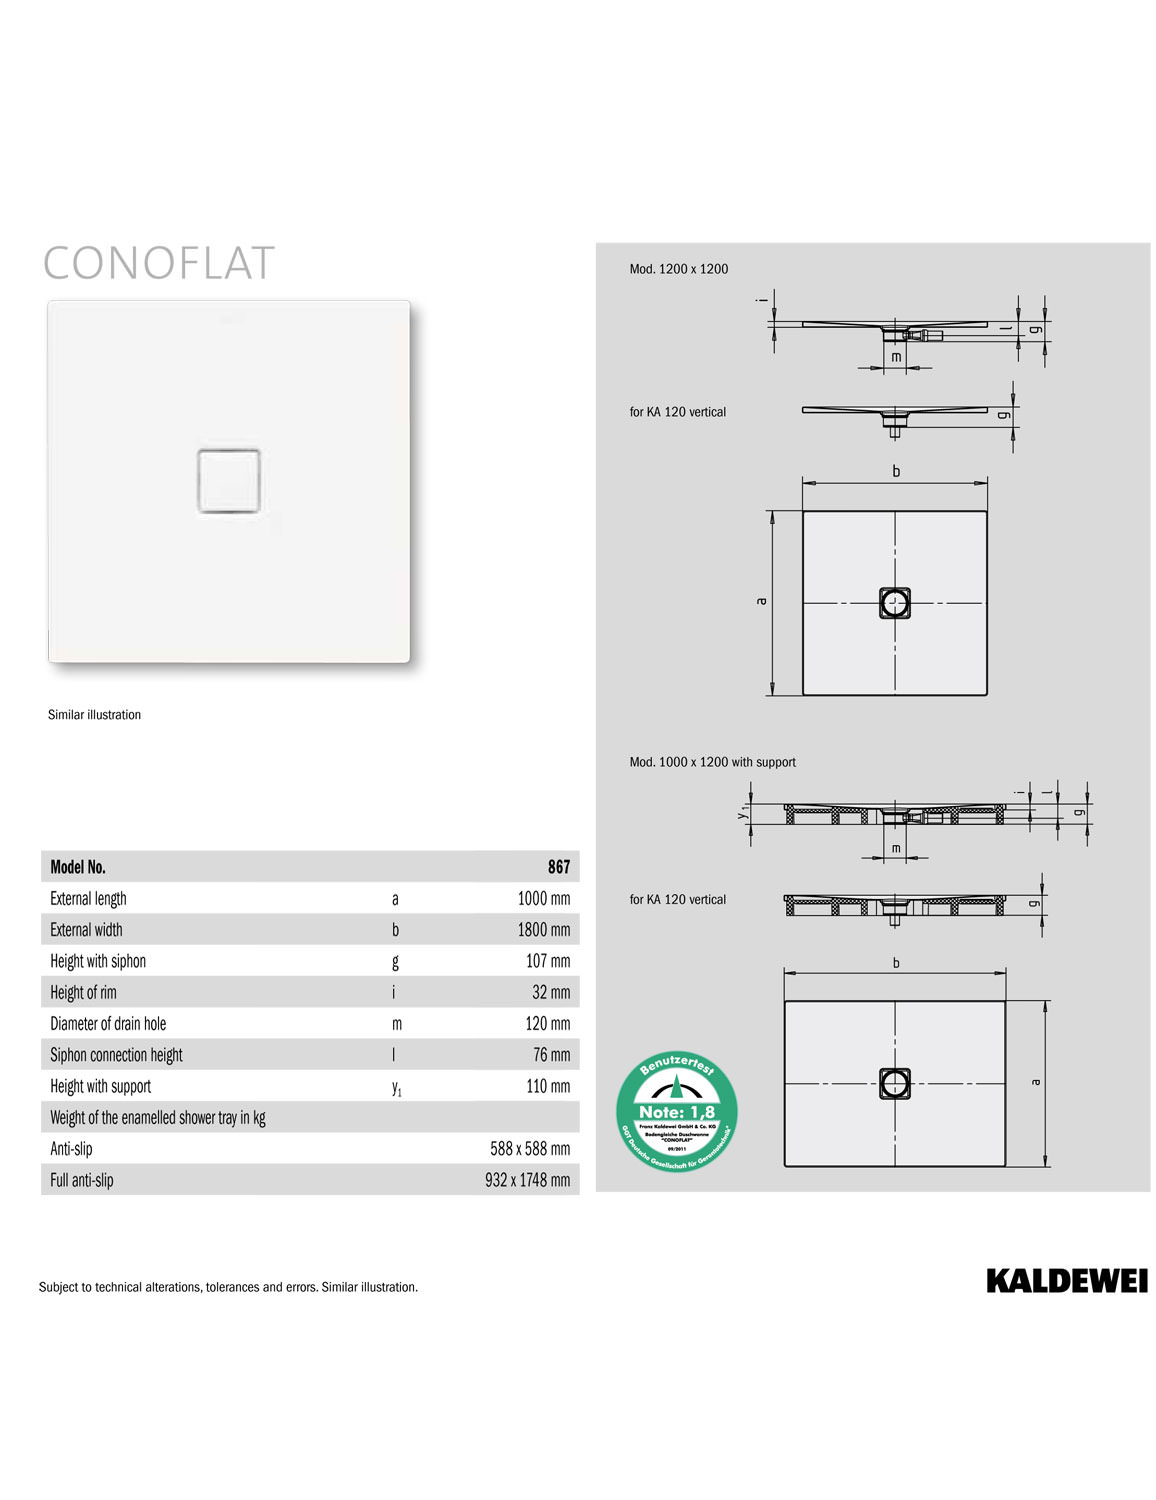 Duschtasse Conoflat Kaldewei Avantgarde Conoflat 1800 X 1000mm Steel Shower Tray